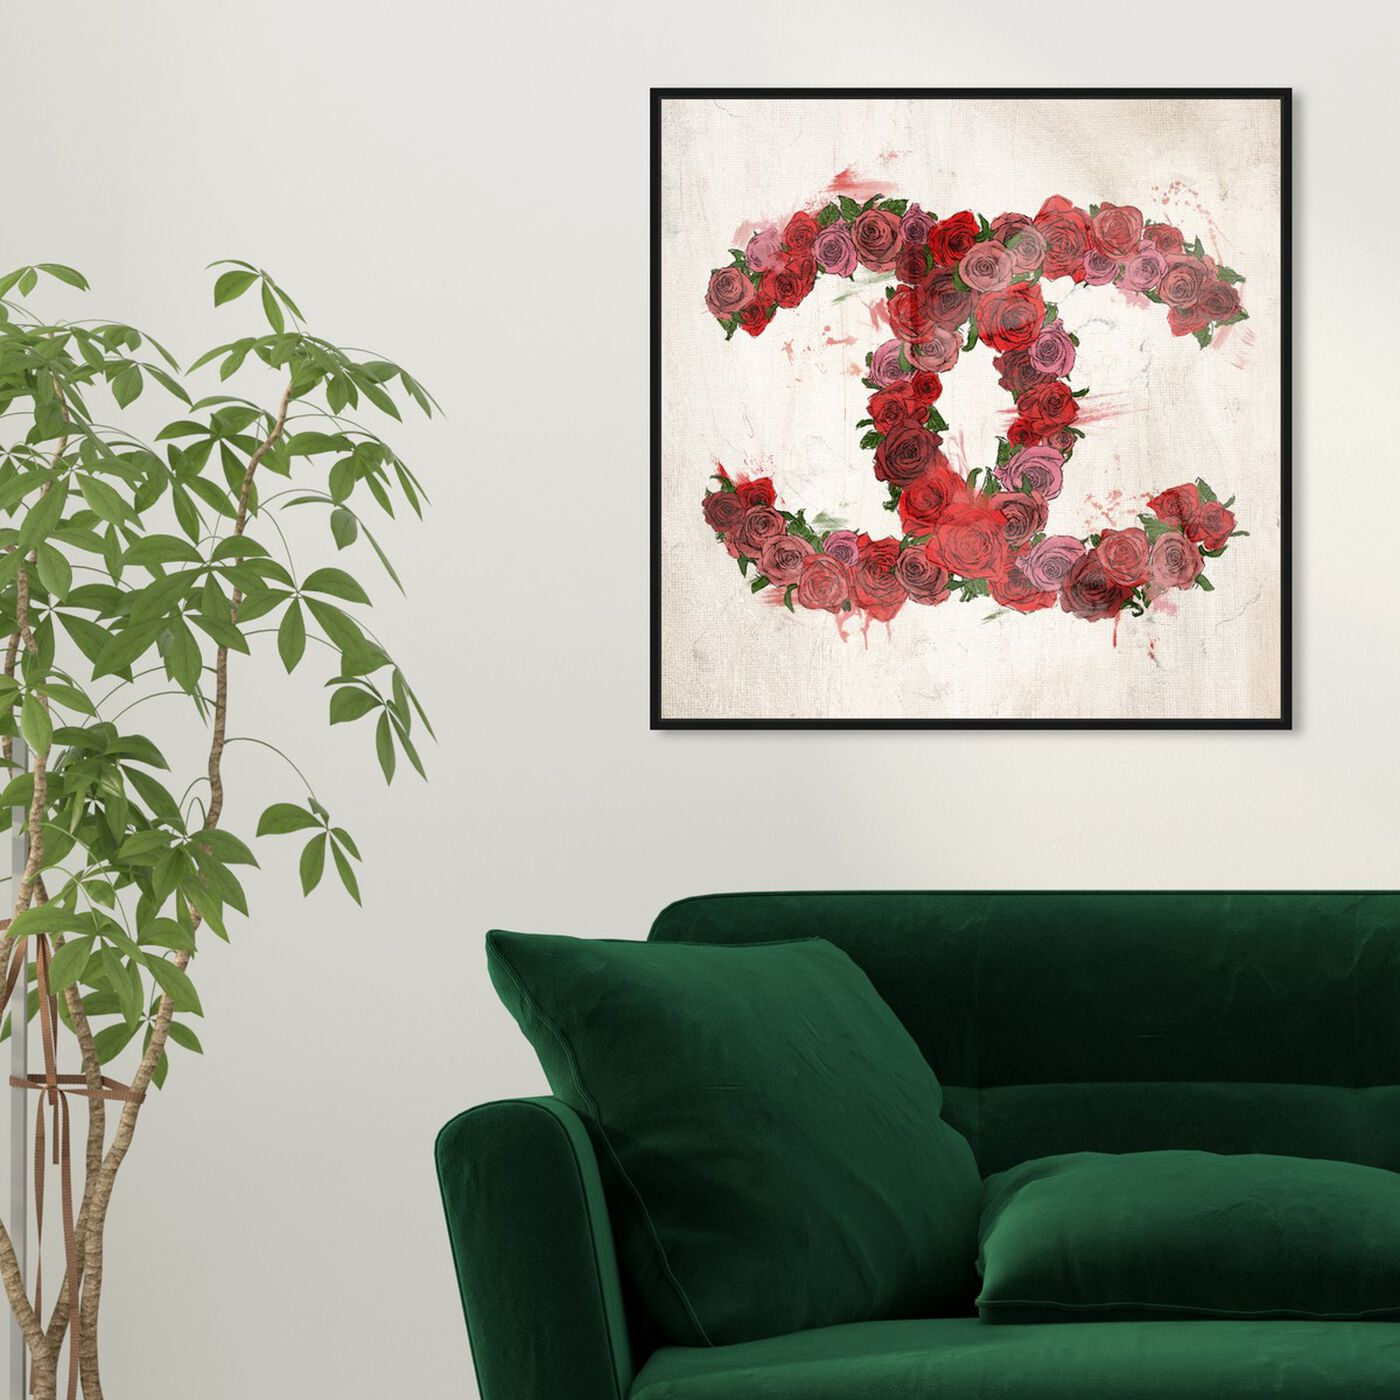 Hanging view of Love Roses  featuring fashion and glam and fashion art.